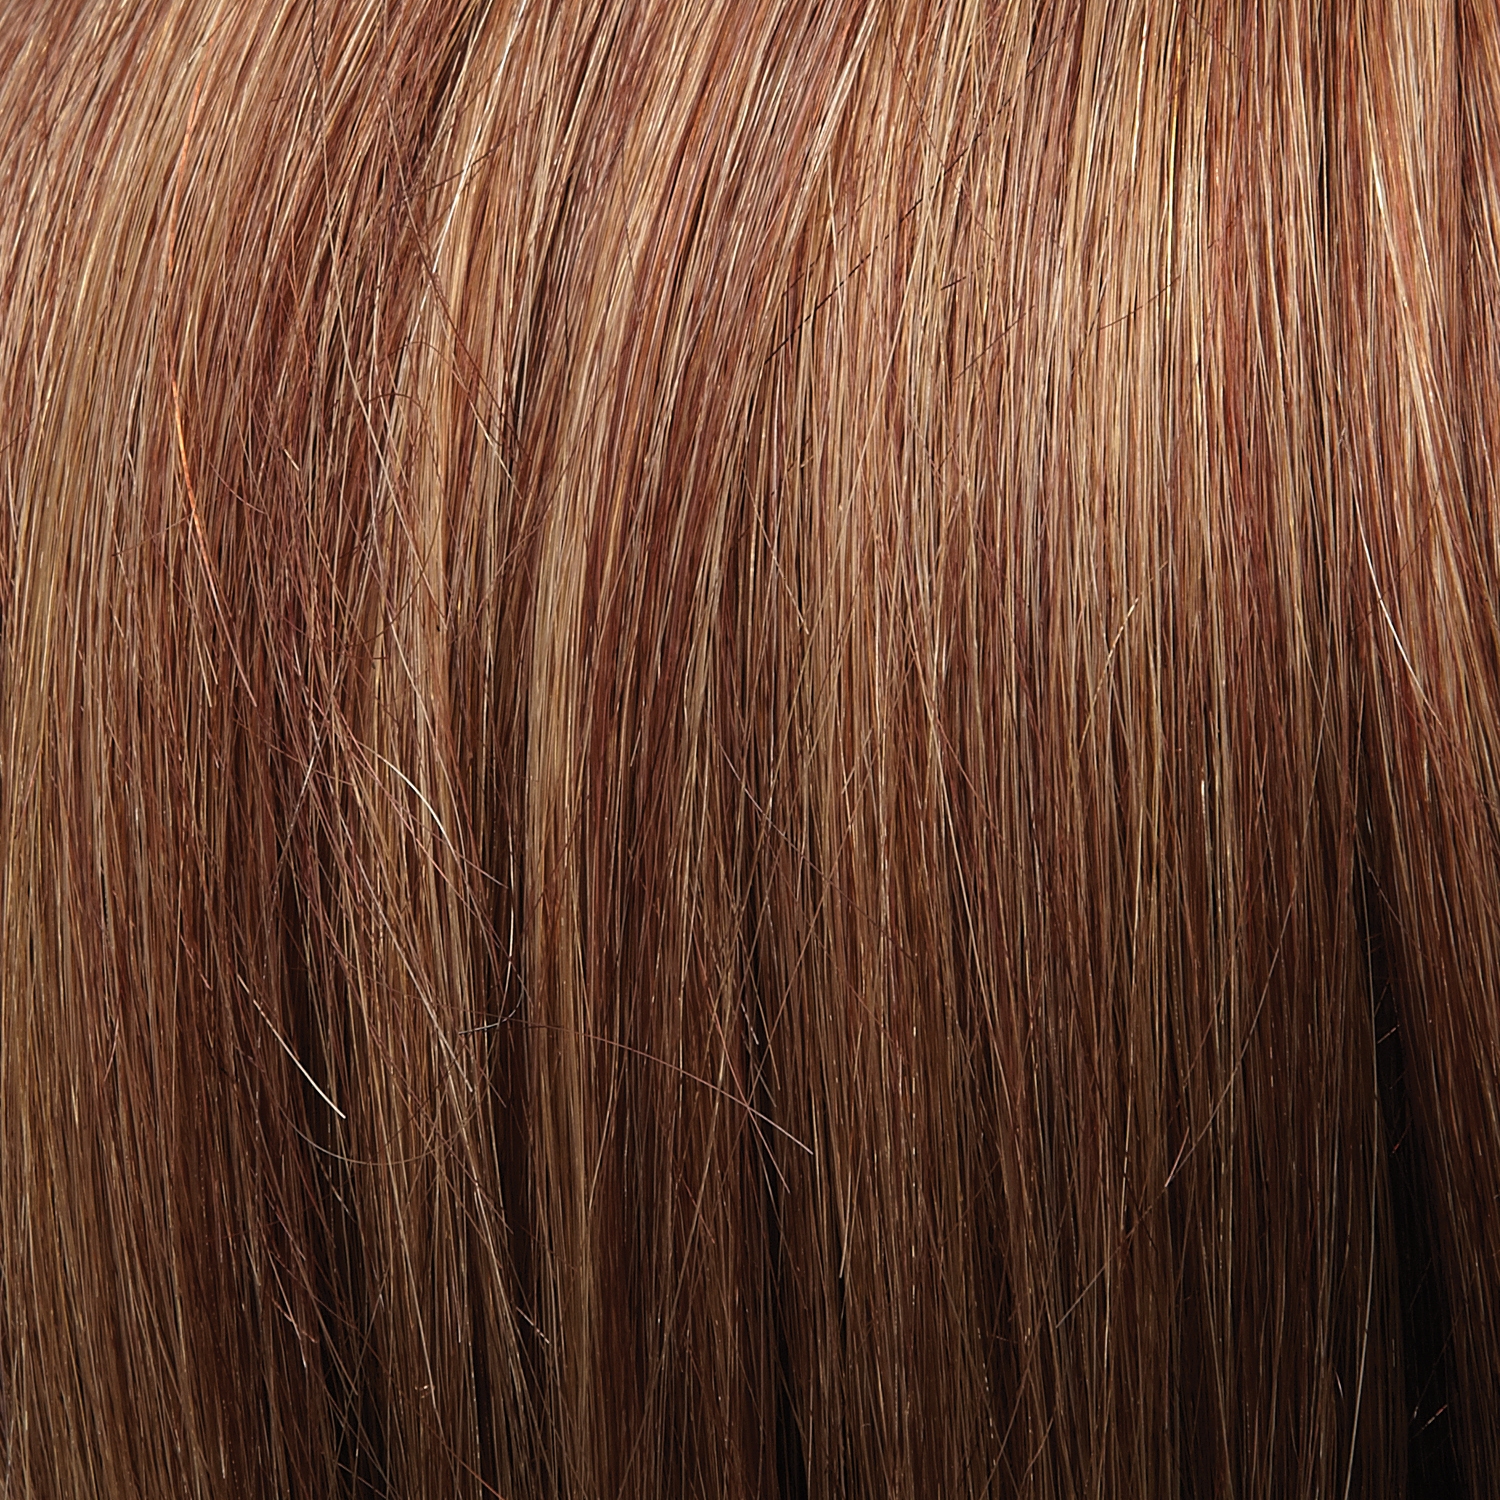 31/26 - Medium Natural Red Brown & Red-Gold Blonde Blend